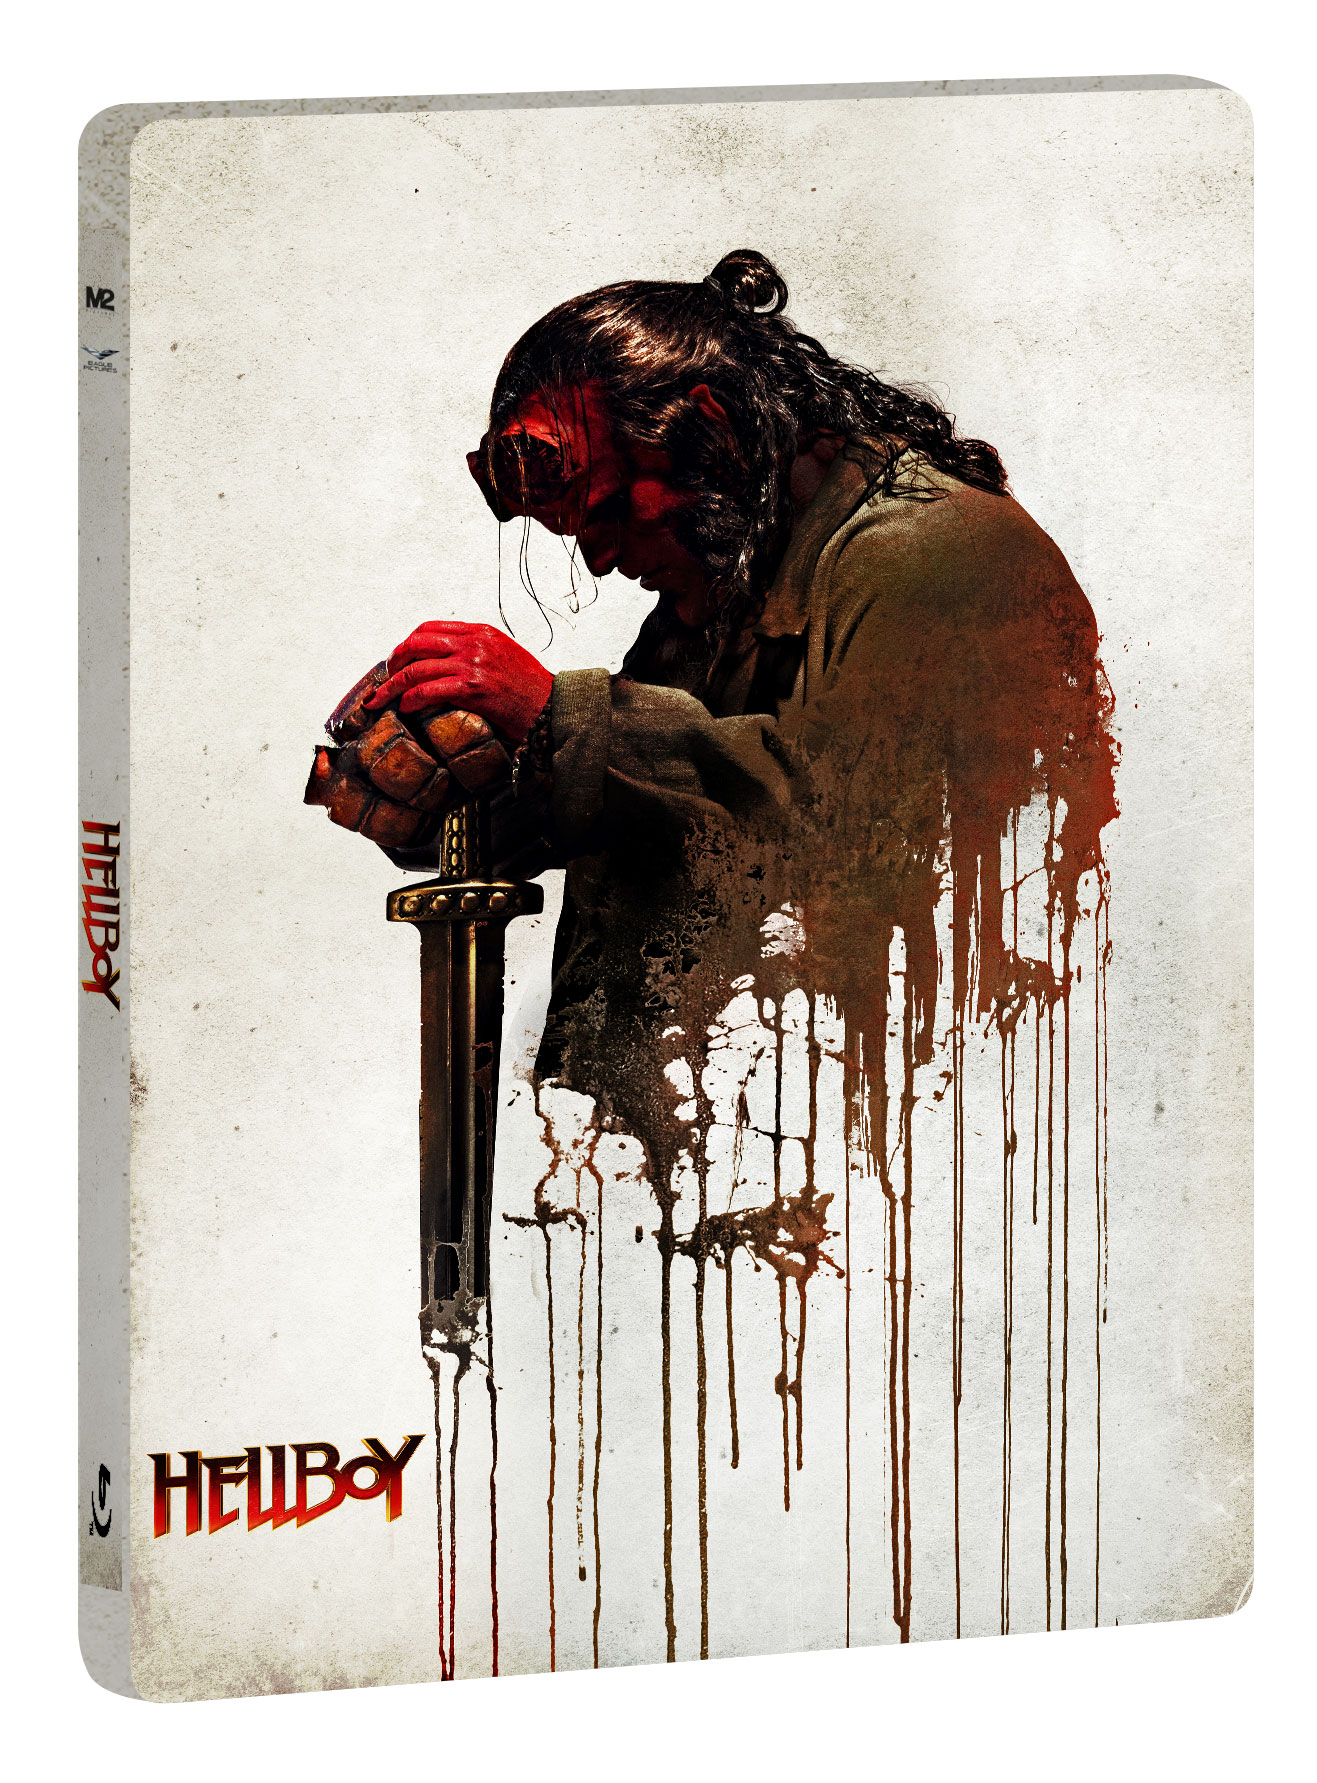 HELLBOY 2019 3 (LTD STEELBOOK) (BLU-RAY+DVD+CARD DA COLLEZIONE)